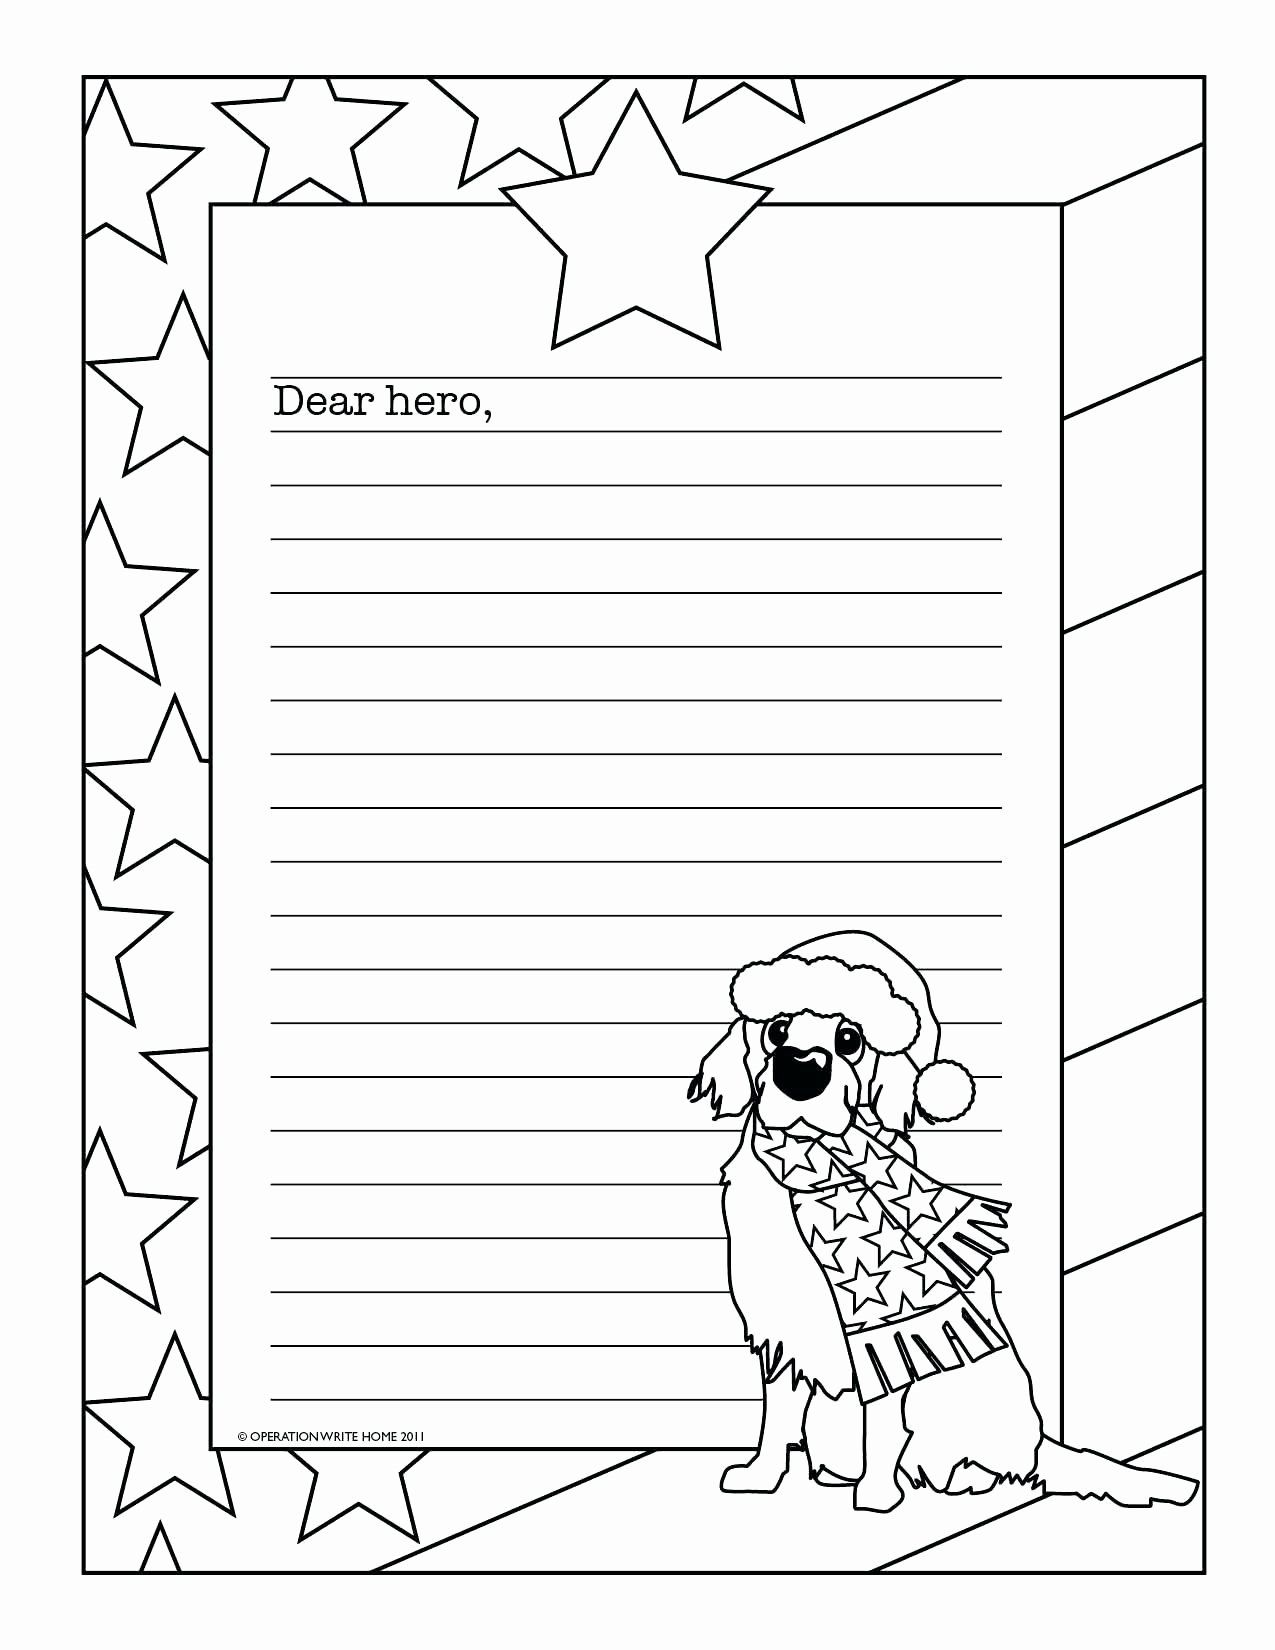 Military Coloring Pages For Preschoolers Unique Military Branches Coloring Pages Sandboxpaper Coloring Pages Military Christmas Cards Flag Coloring Pages